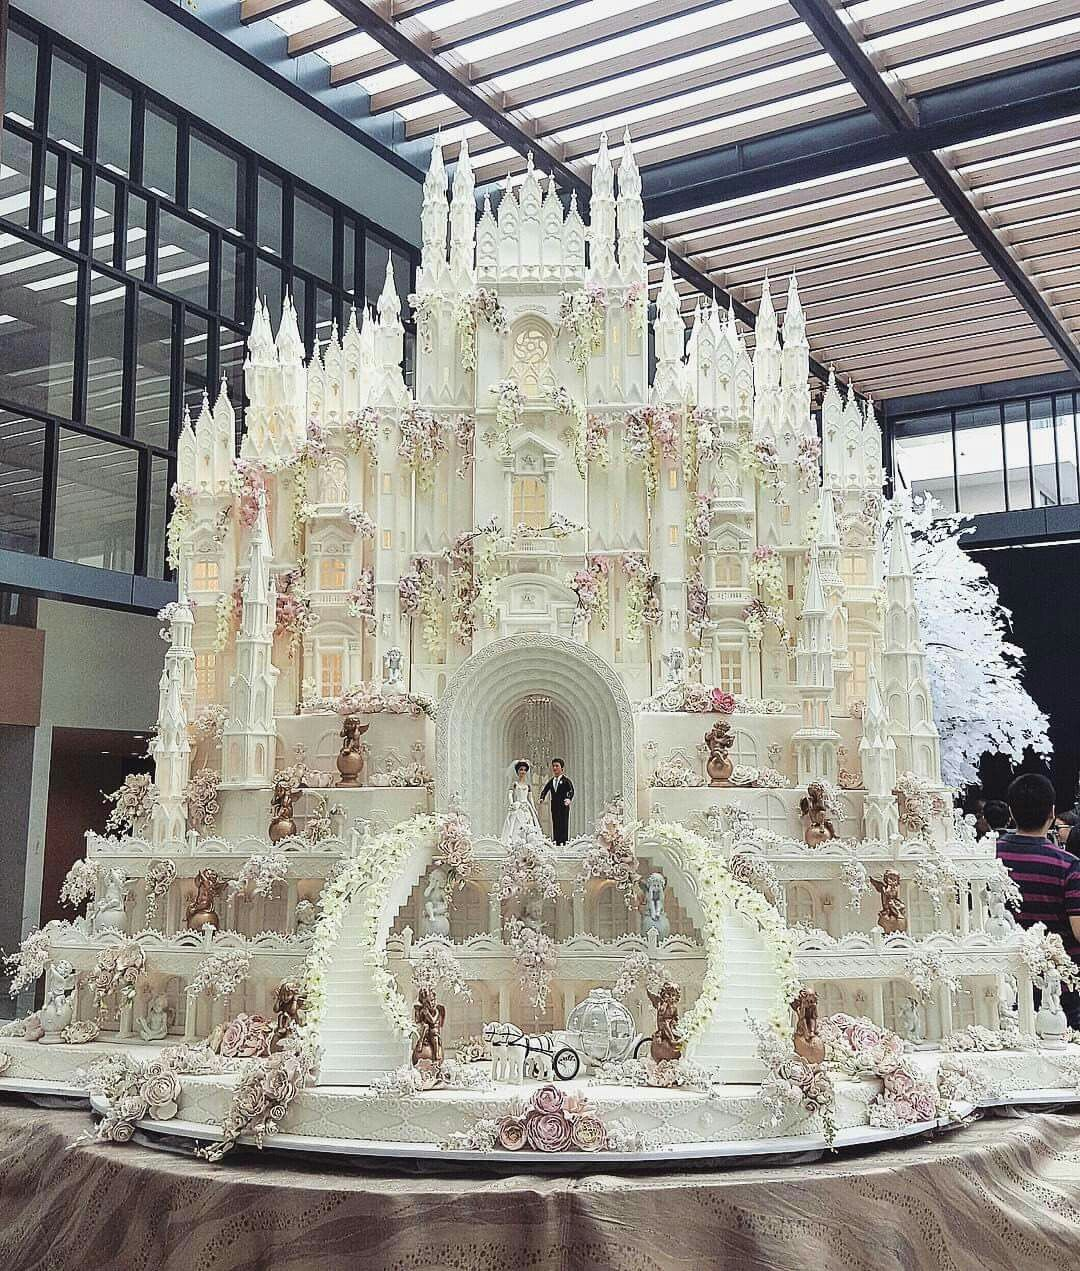 Can you believe this is a wedding cake!? (Wedding Cake